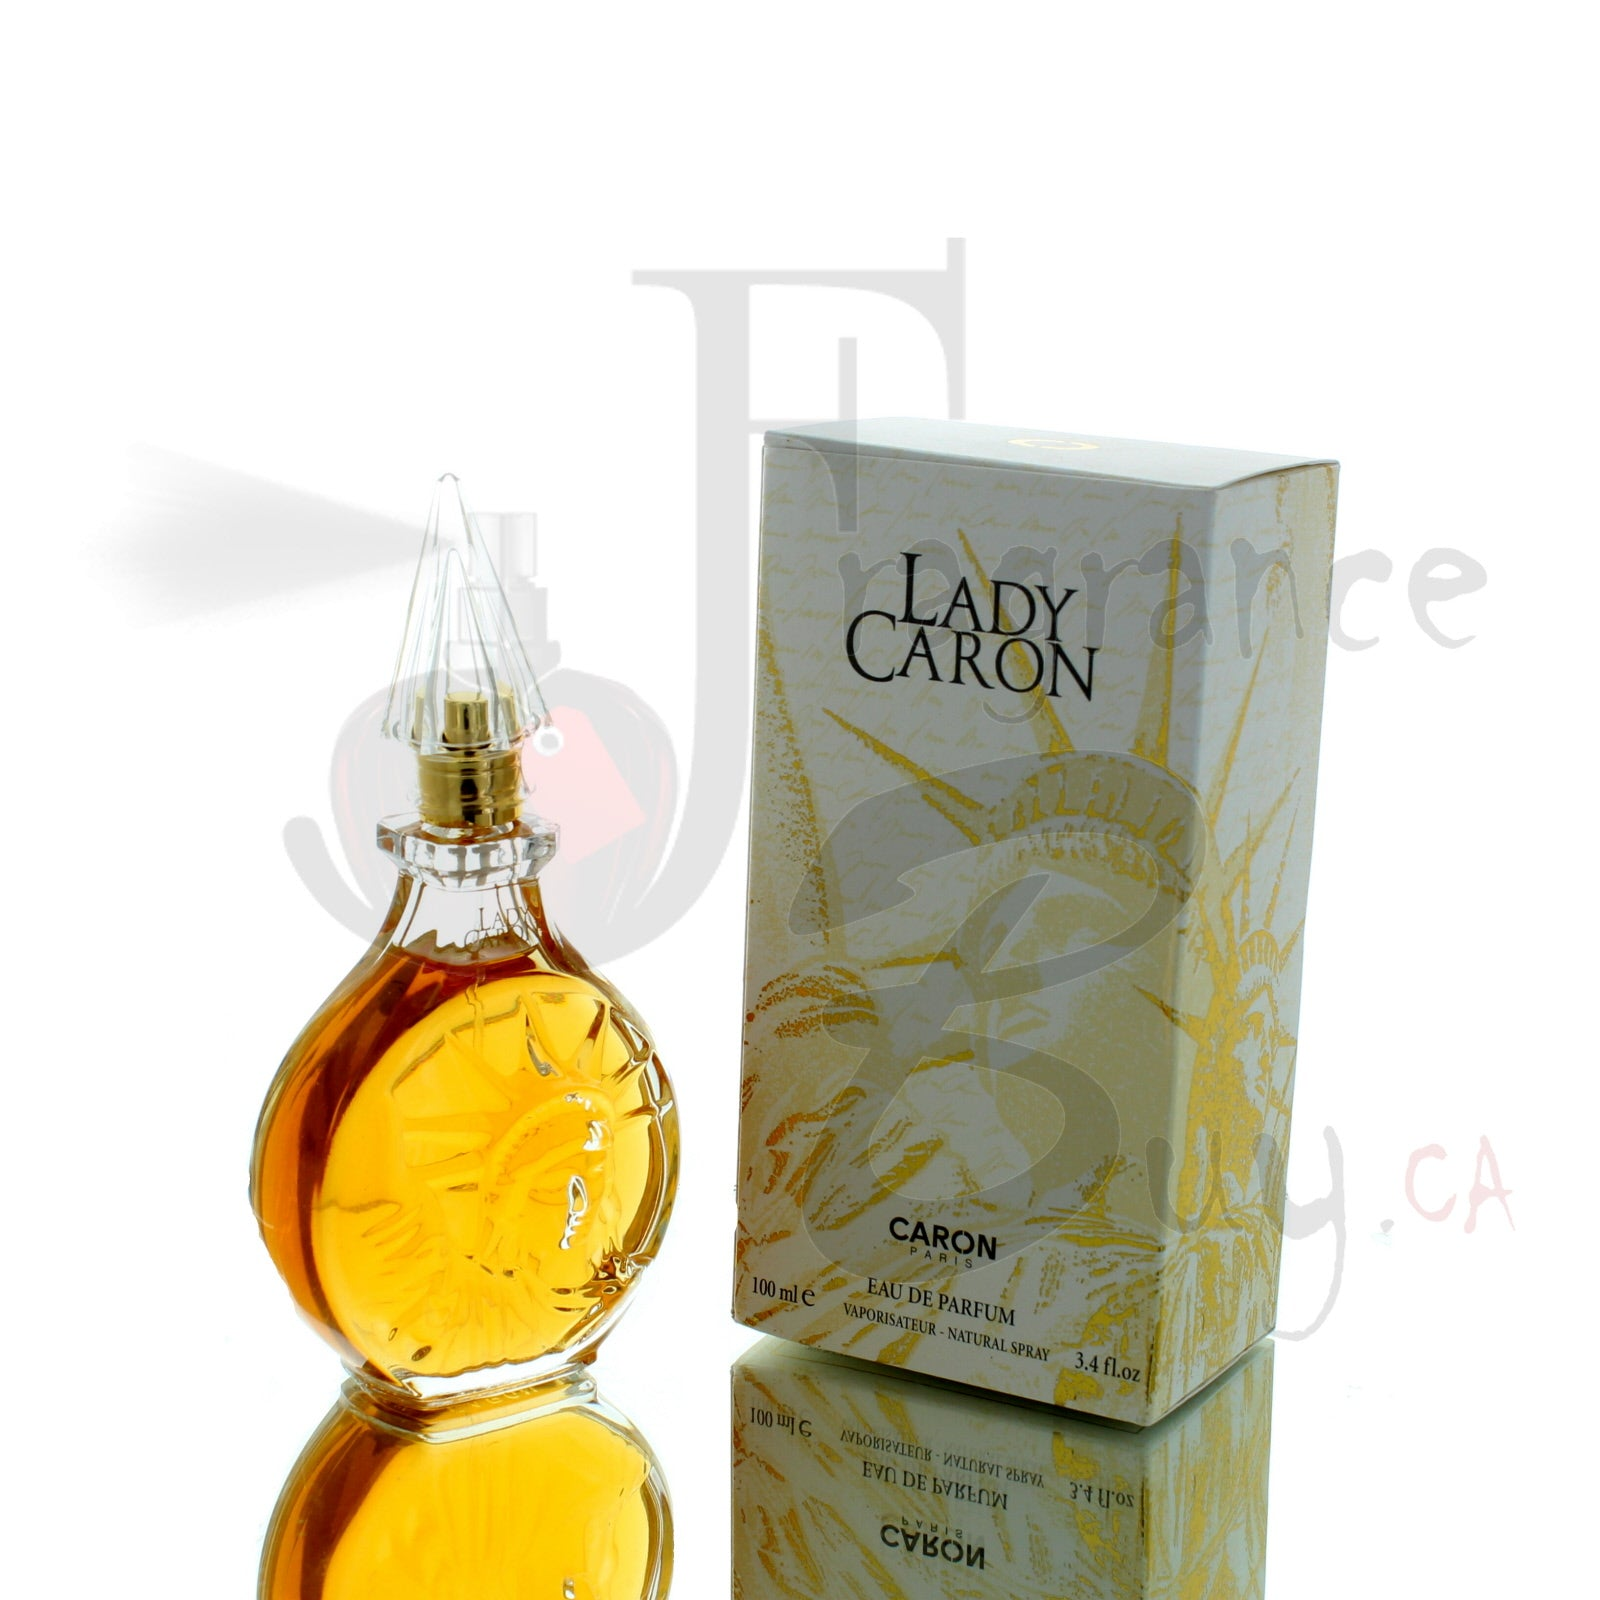 Caron Lady Caron For Woman